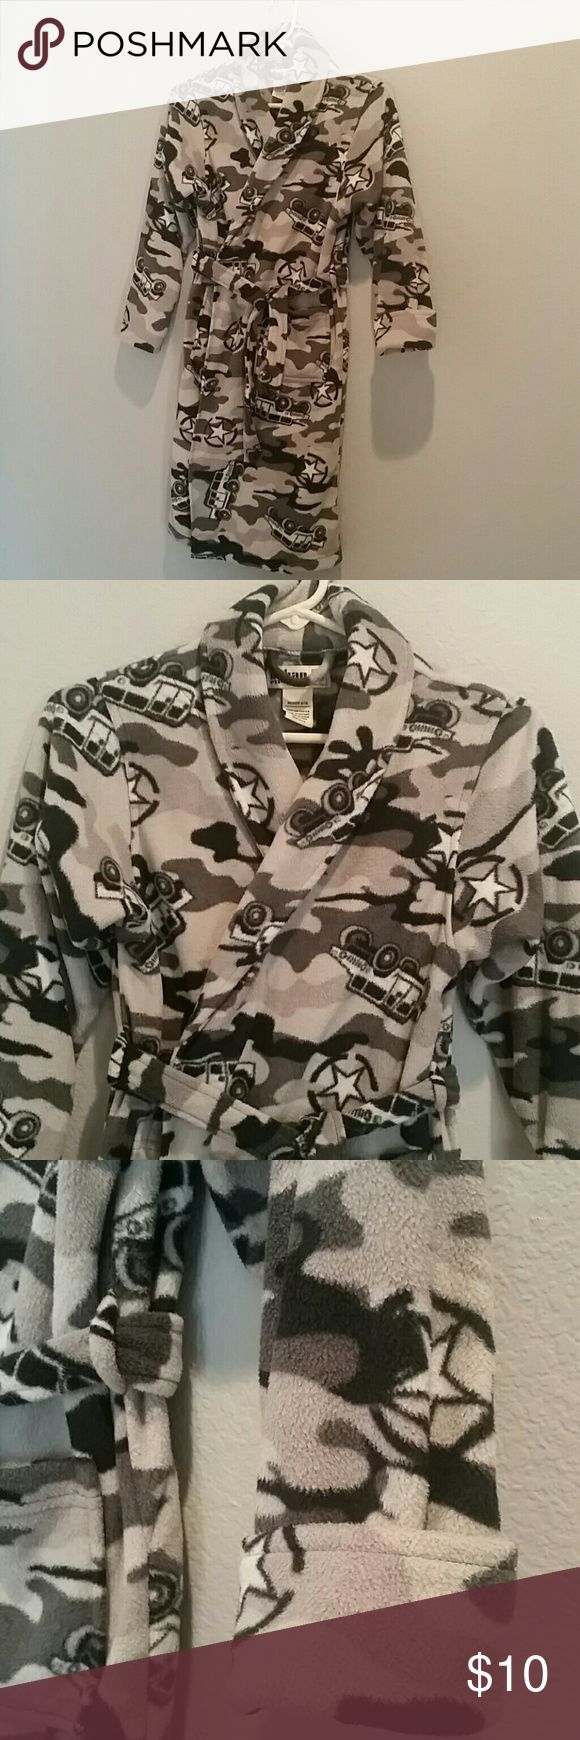 """Boys Camo Print Bathrobe from Urban Pipeline Boys bathrobe in like new condition. Warm and fleecey with a tie at the waist and front pockets. Sleeves can be cuffed or worn long. 100% fire retardant fleece. Worn  just a few times. Sleeves measure 21"""" uncuffed and 34"""" shoulder to hem. Size 8/10. All children's bundles 20% off. Urban Pipeline Pajamas Robes"""